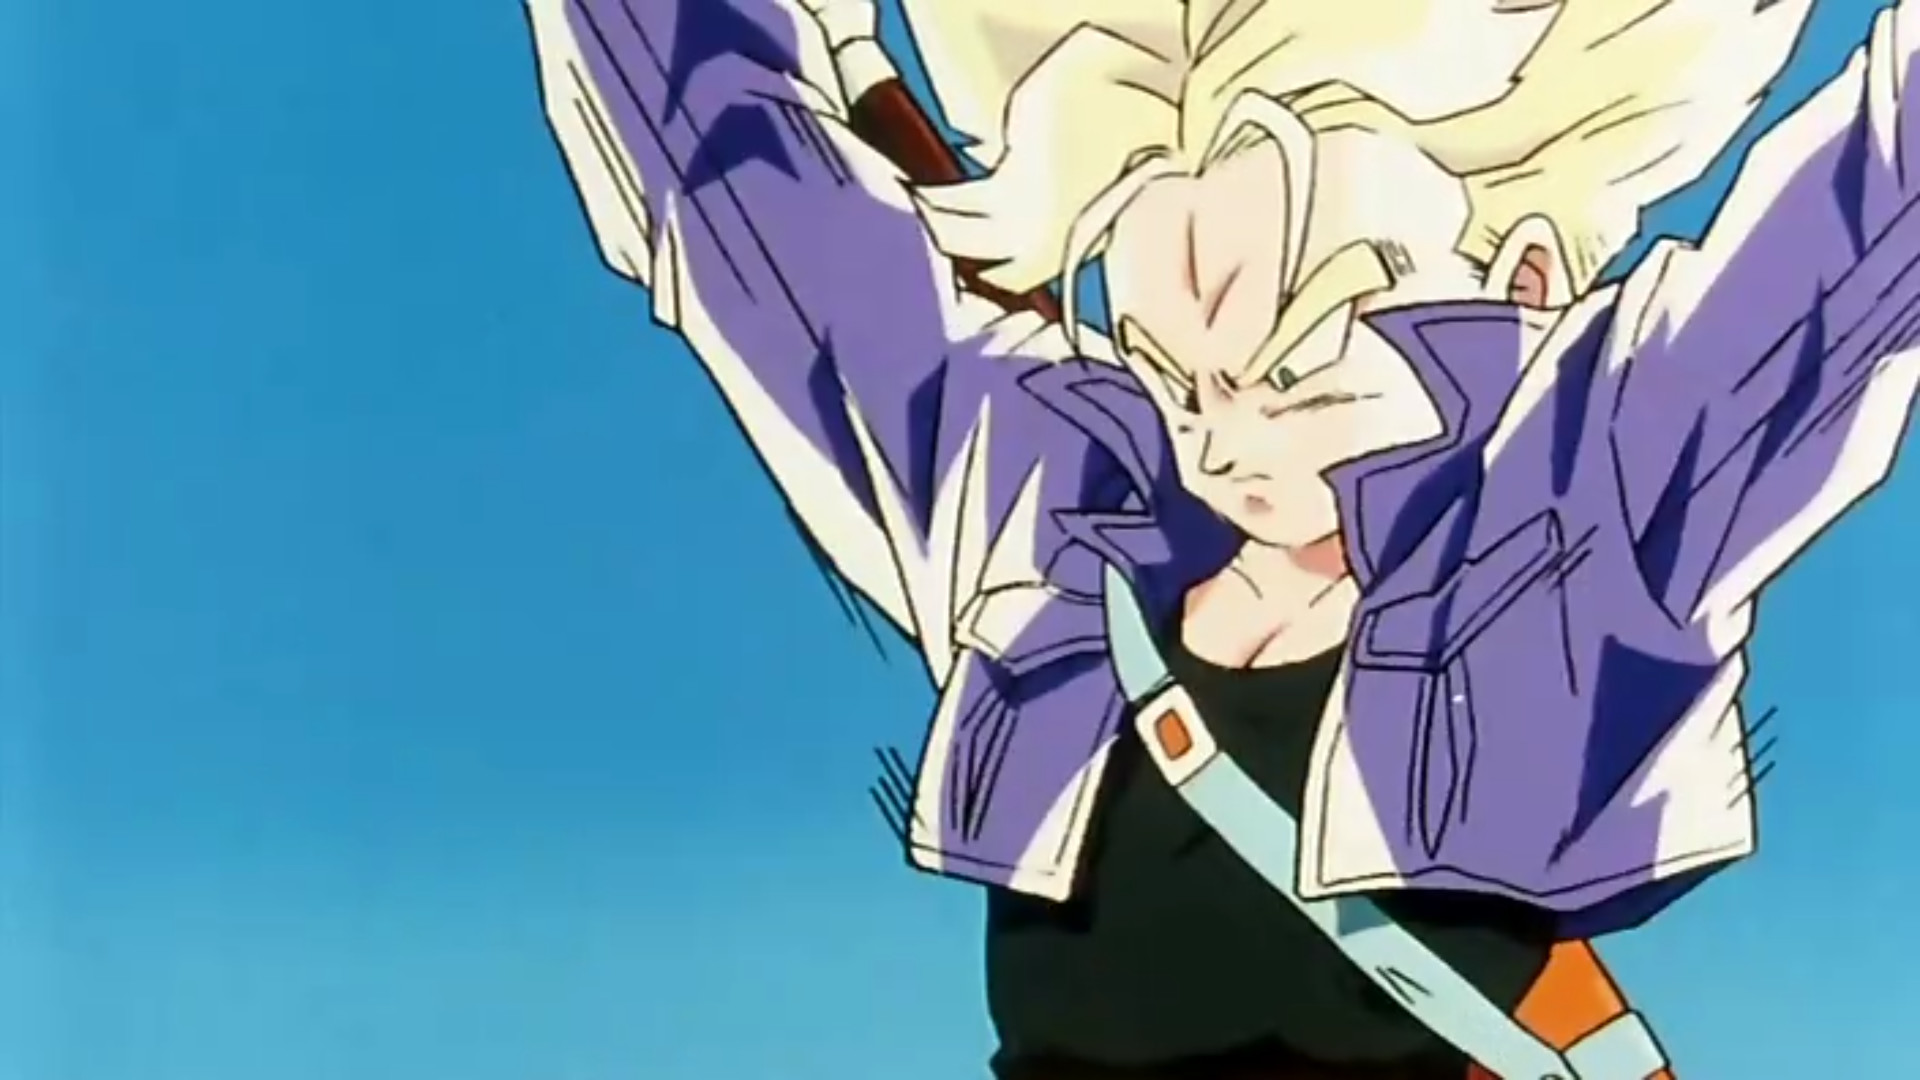 Res: 1920x1080, Widescreen Wallpapers of Trunks » Best Pictures